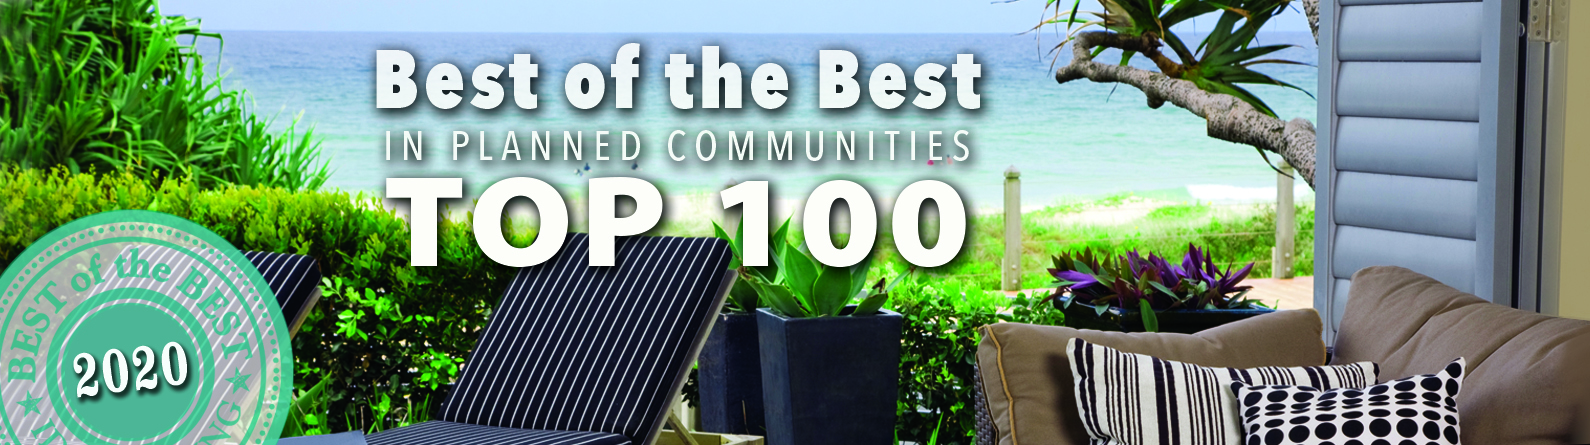 2020 Best of the Best in Planned Communities